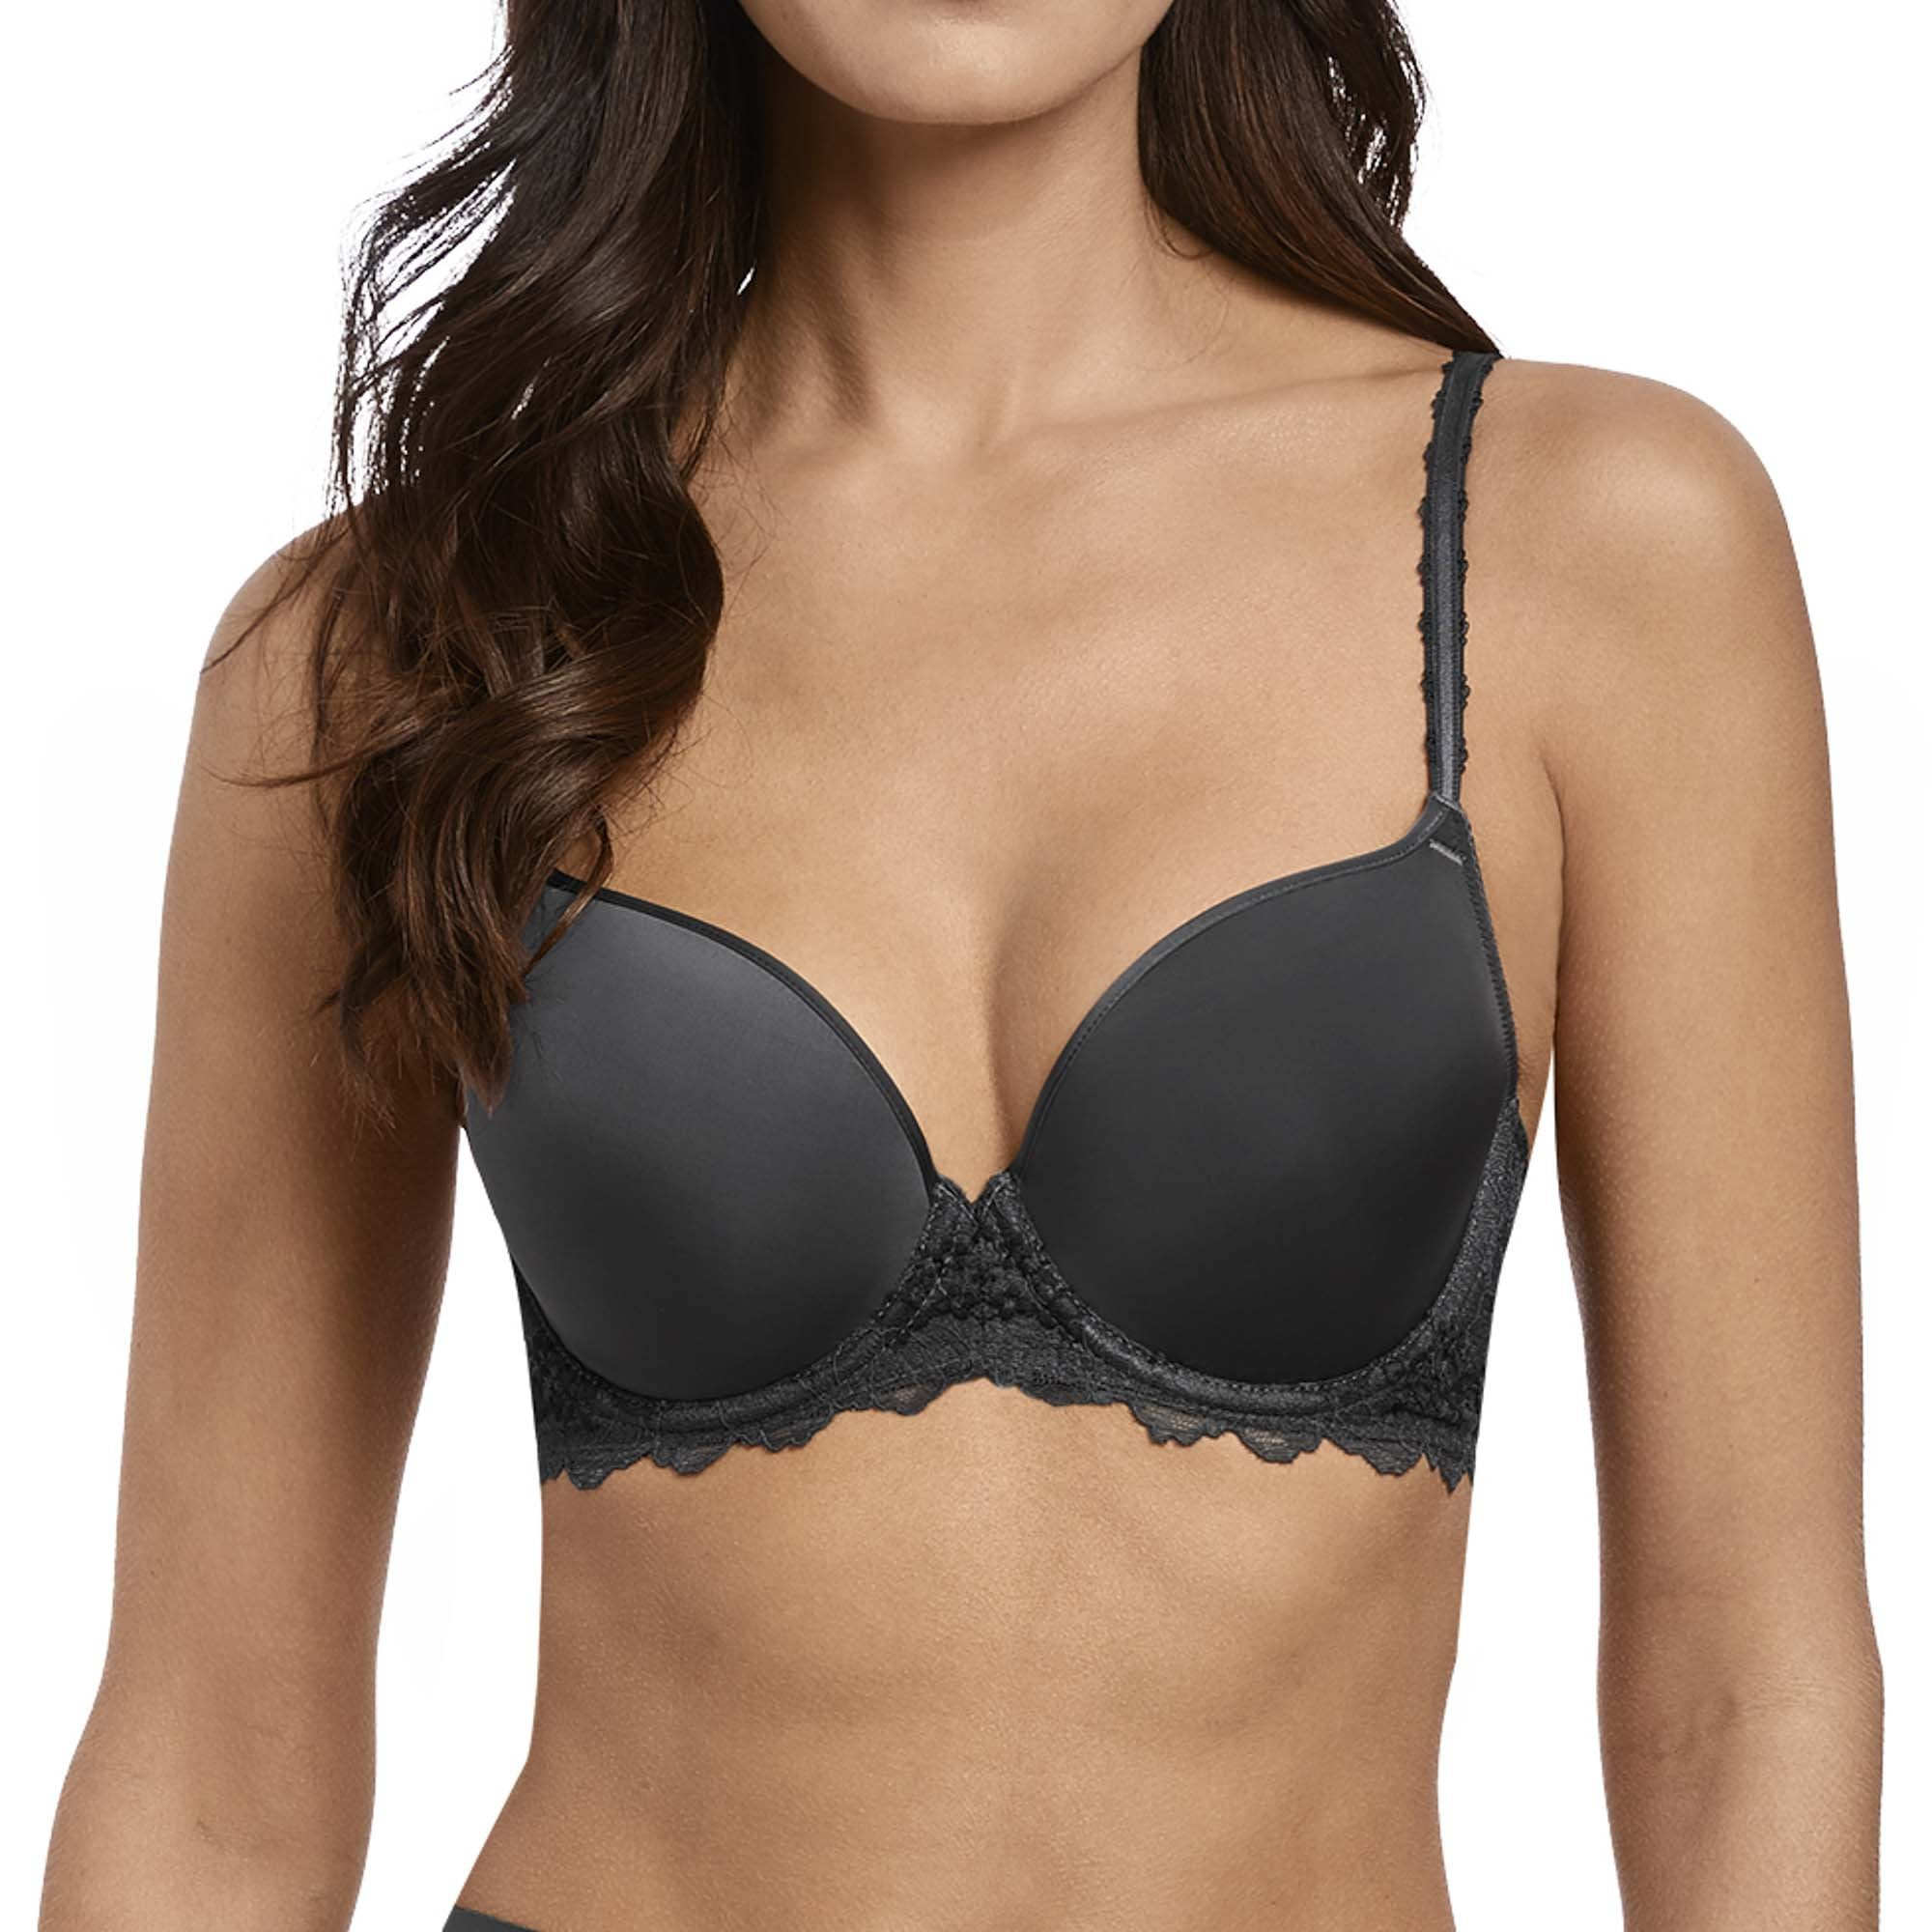 2b6eb0a3e Wacoal Lace Perfection Contour Bra In Charcoal